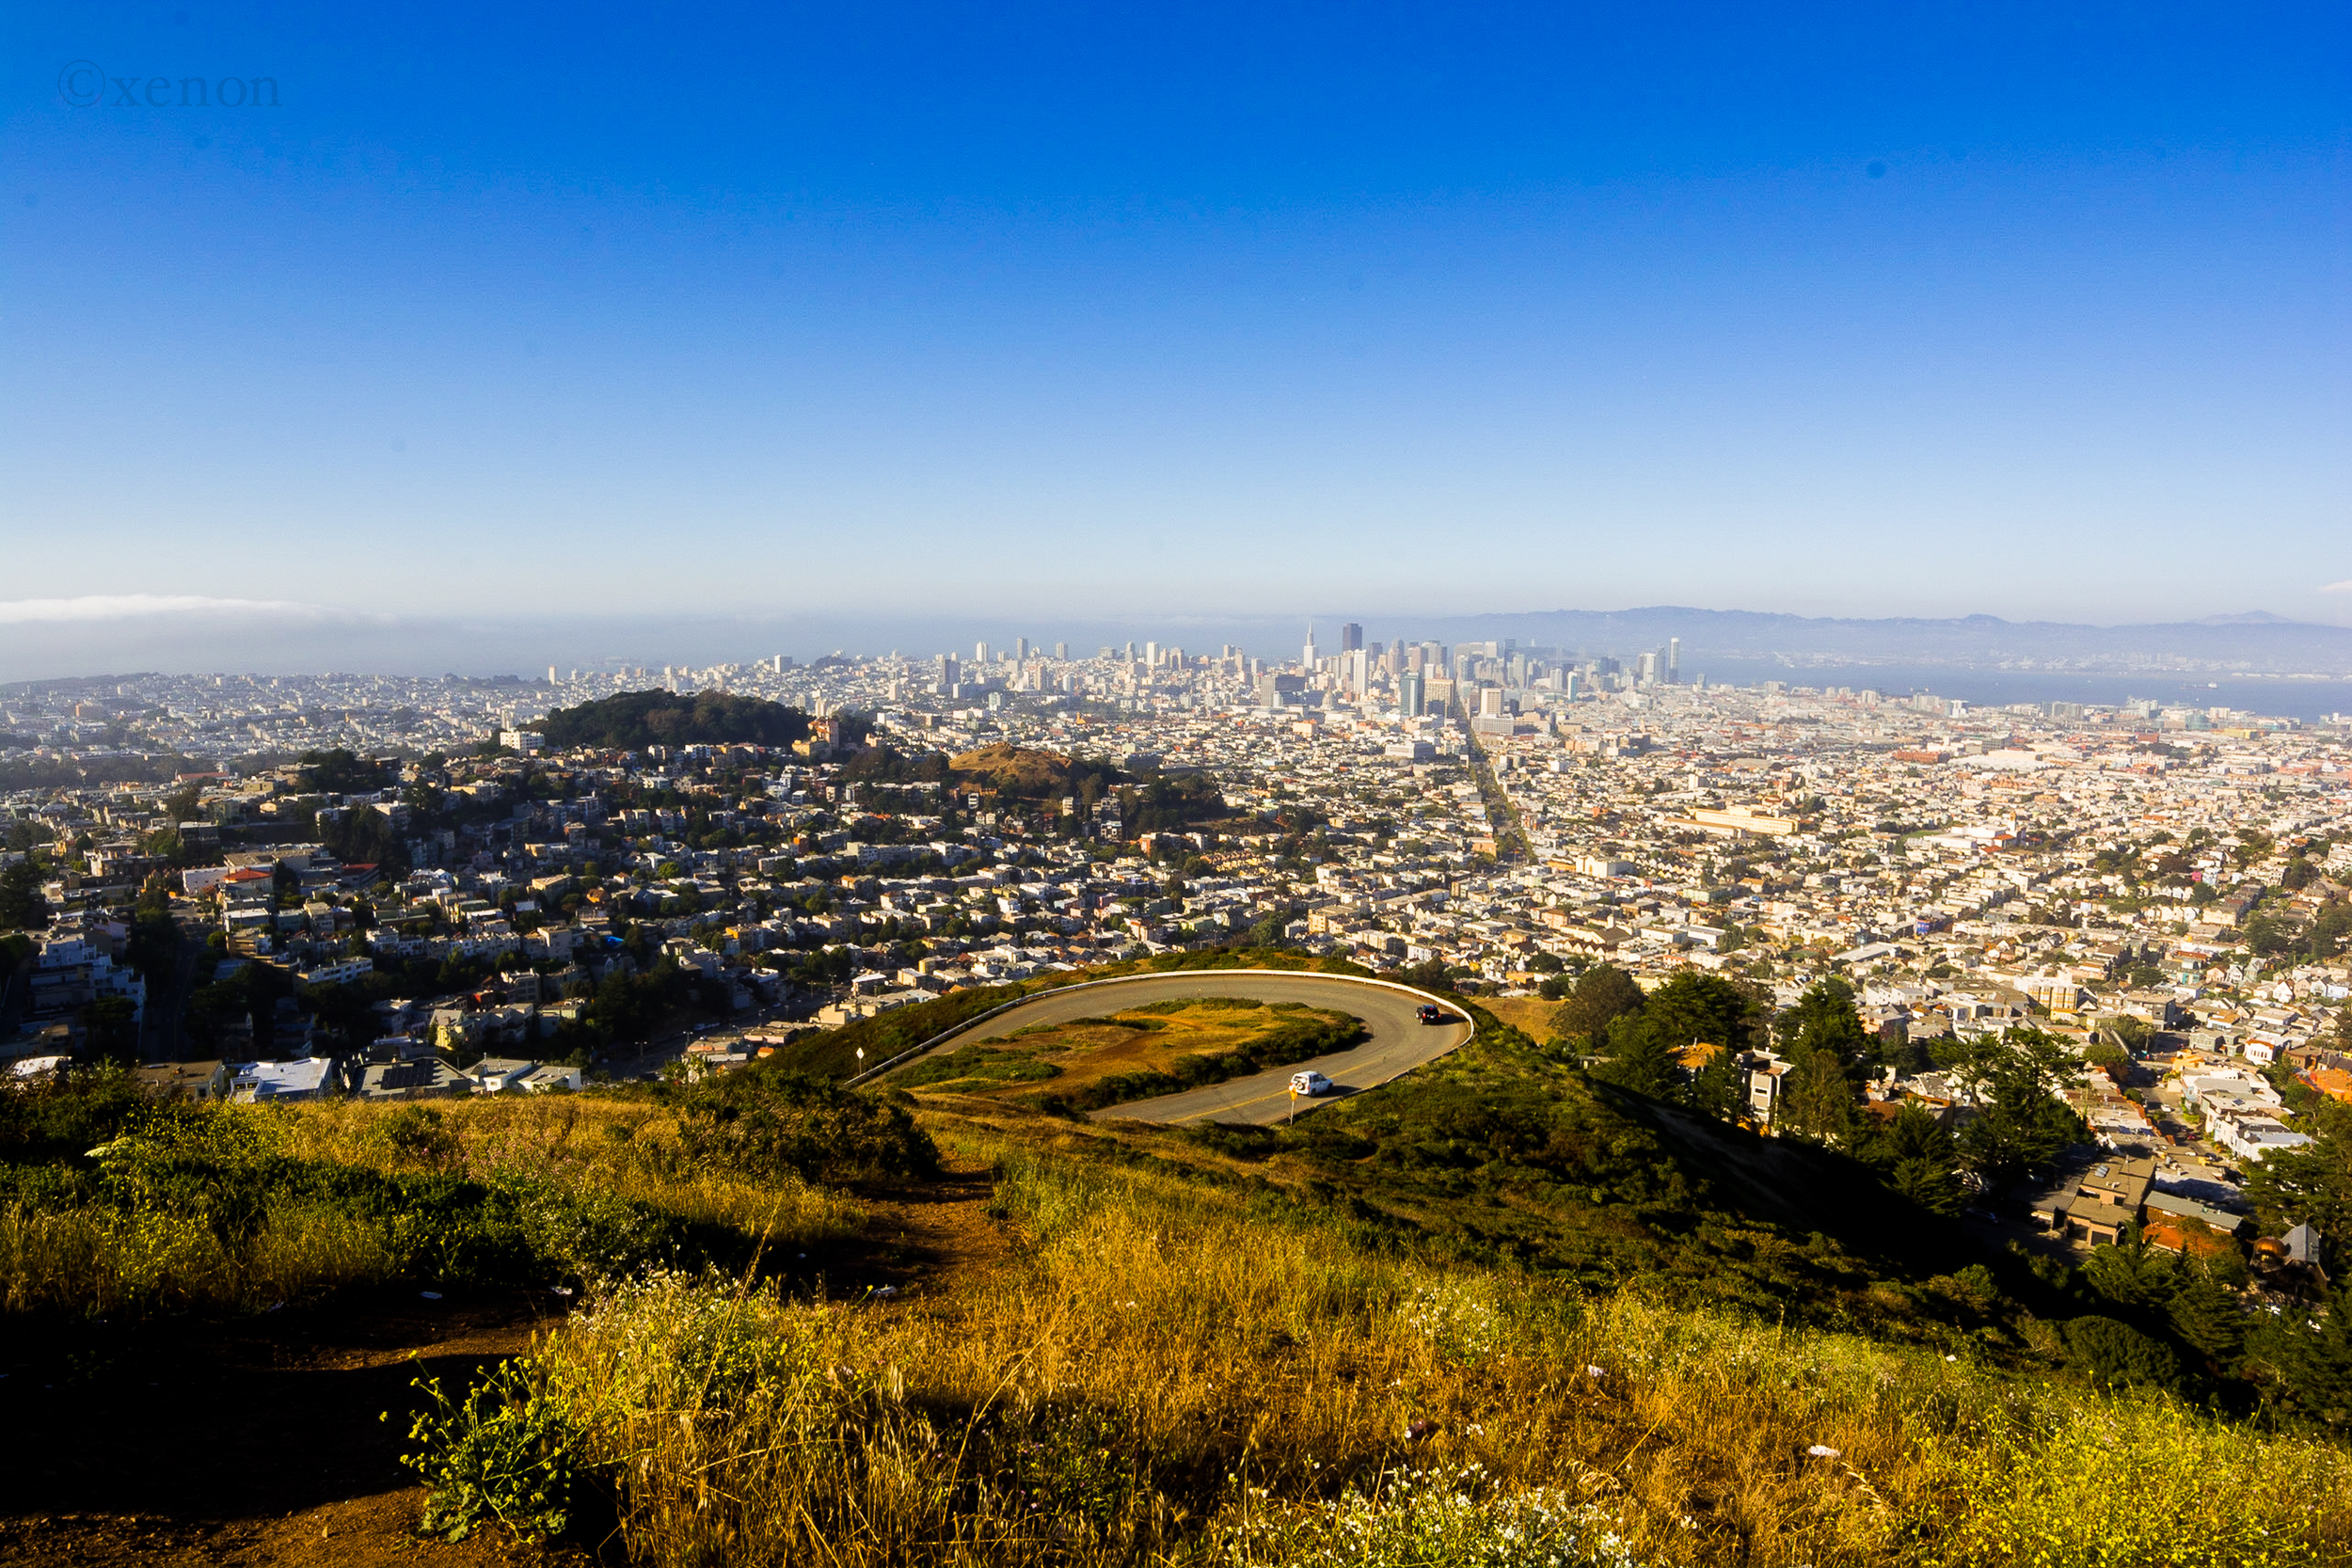 San Francisco, California - 13 June 2015.jpg